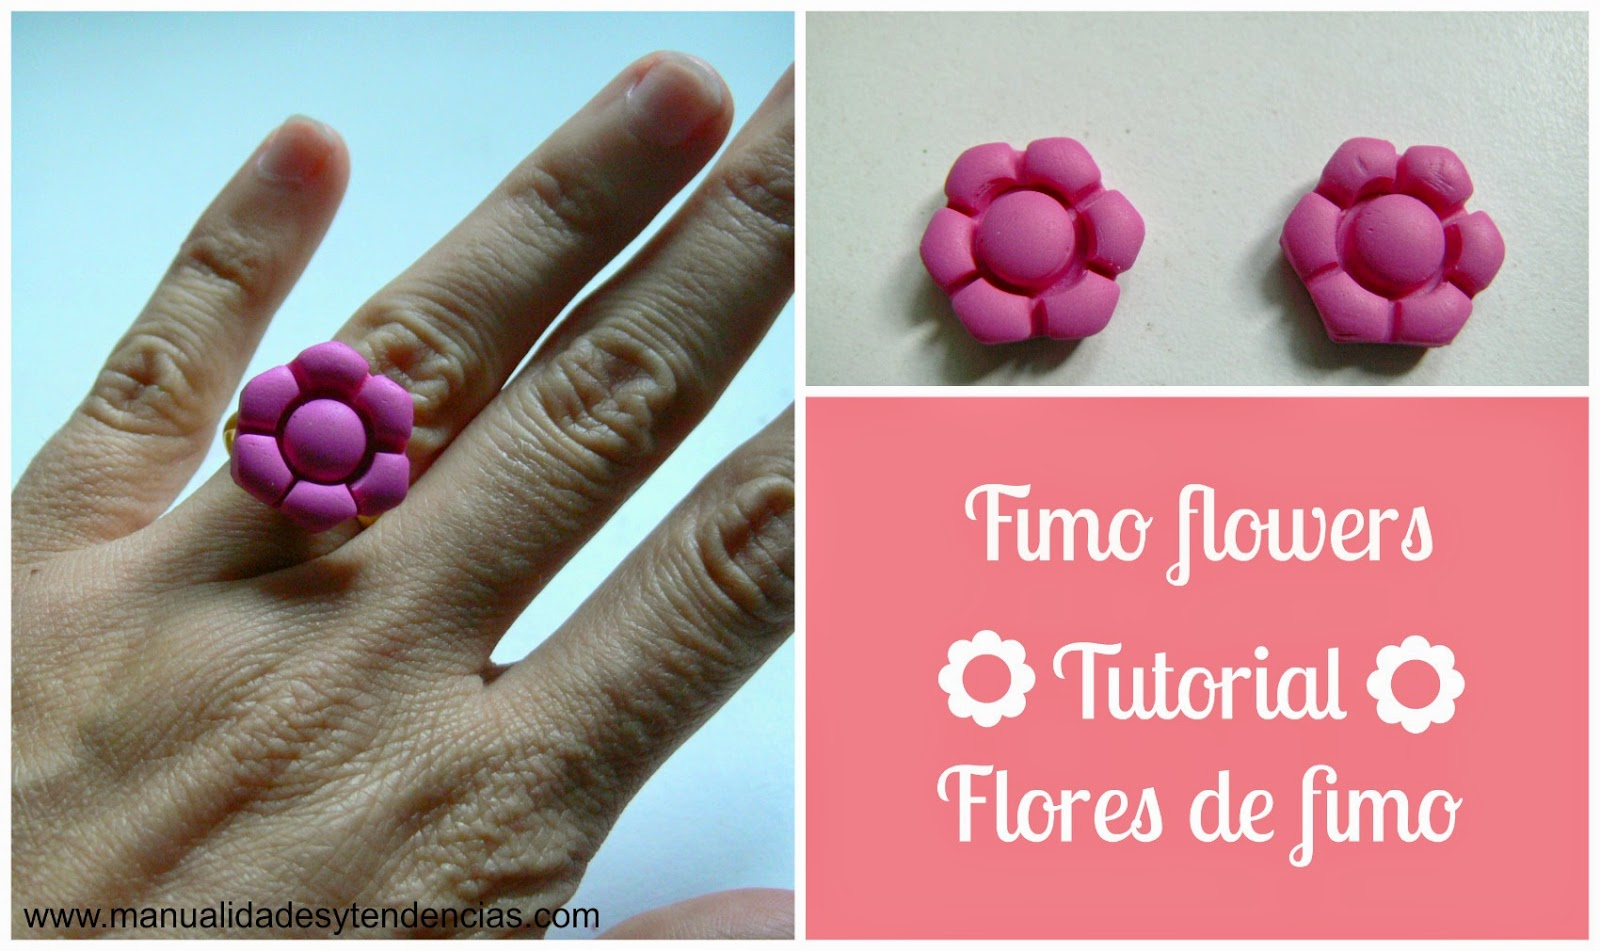 Tutorial flor de fimo / Fimo flower tutorial